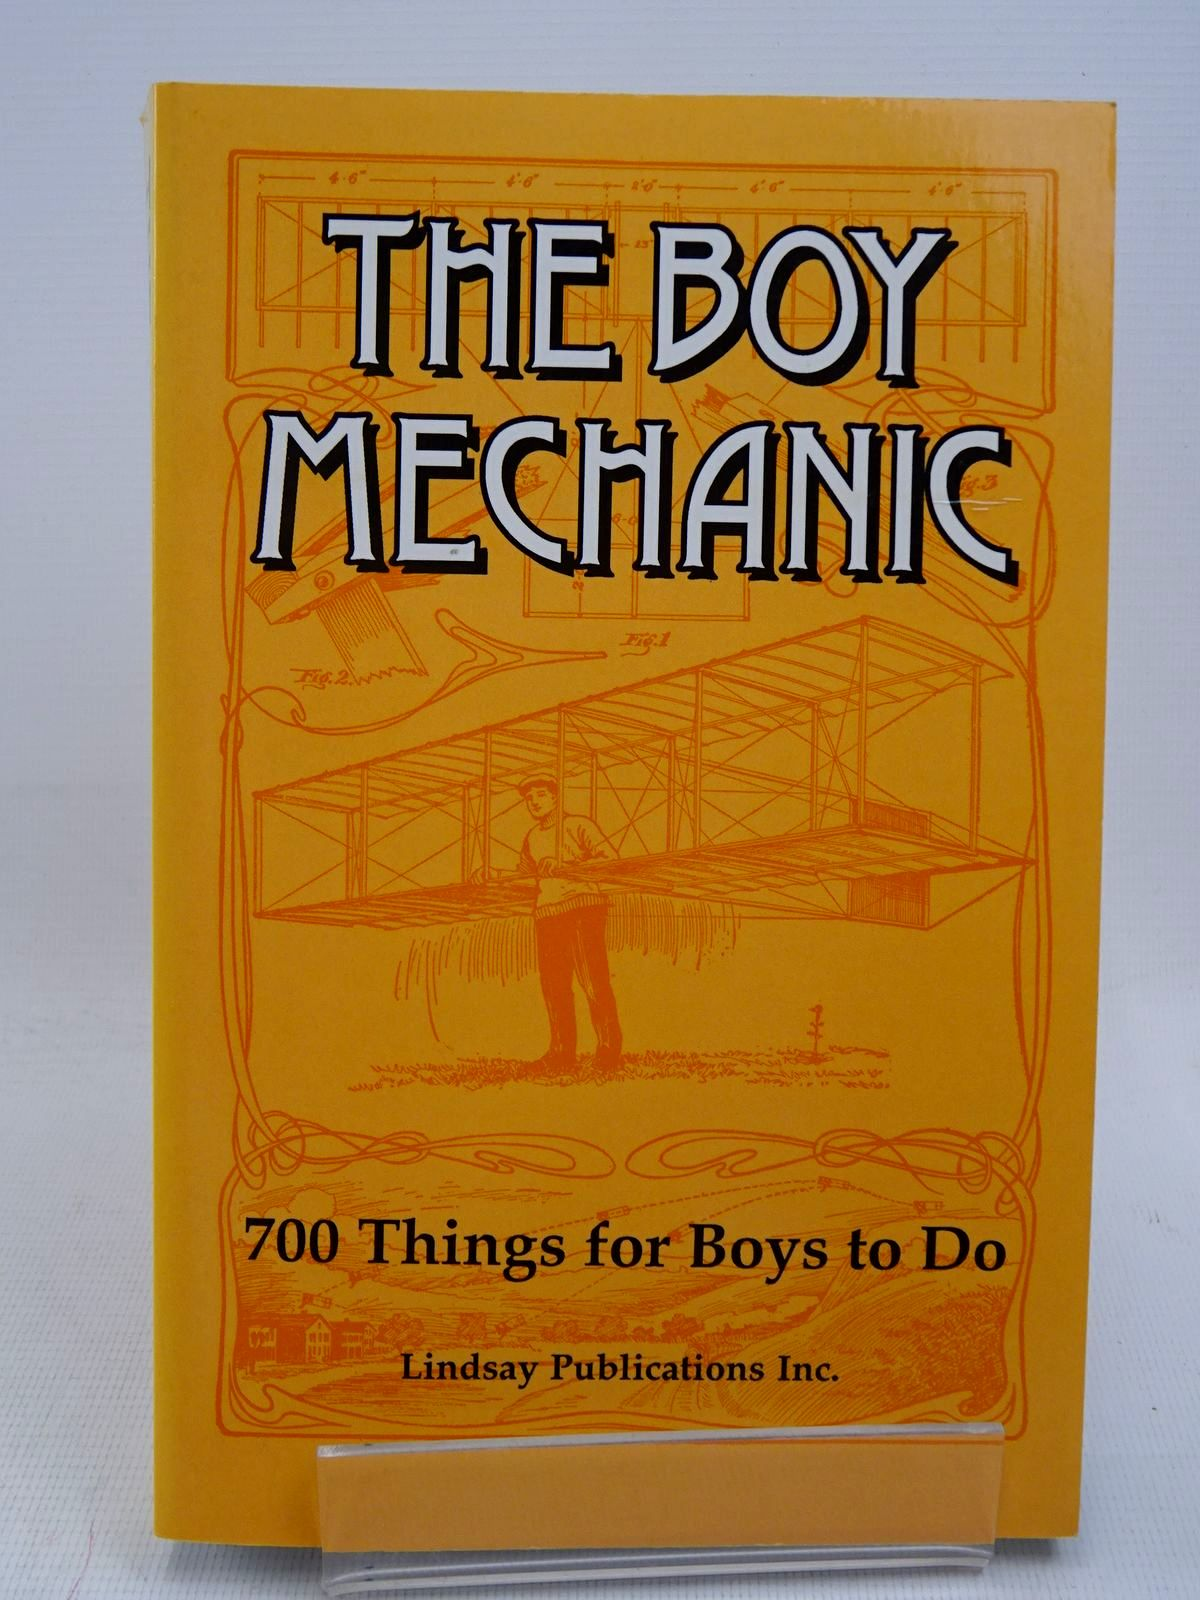 Photo of THE BOY MECHANIC BOOK I: 700 THINGS FOR BOYS TO DO published by Lindsay Publications (STOCK CODE: 1817067)  for sale by Stella & Rose's Books